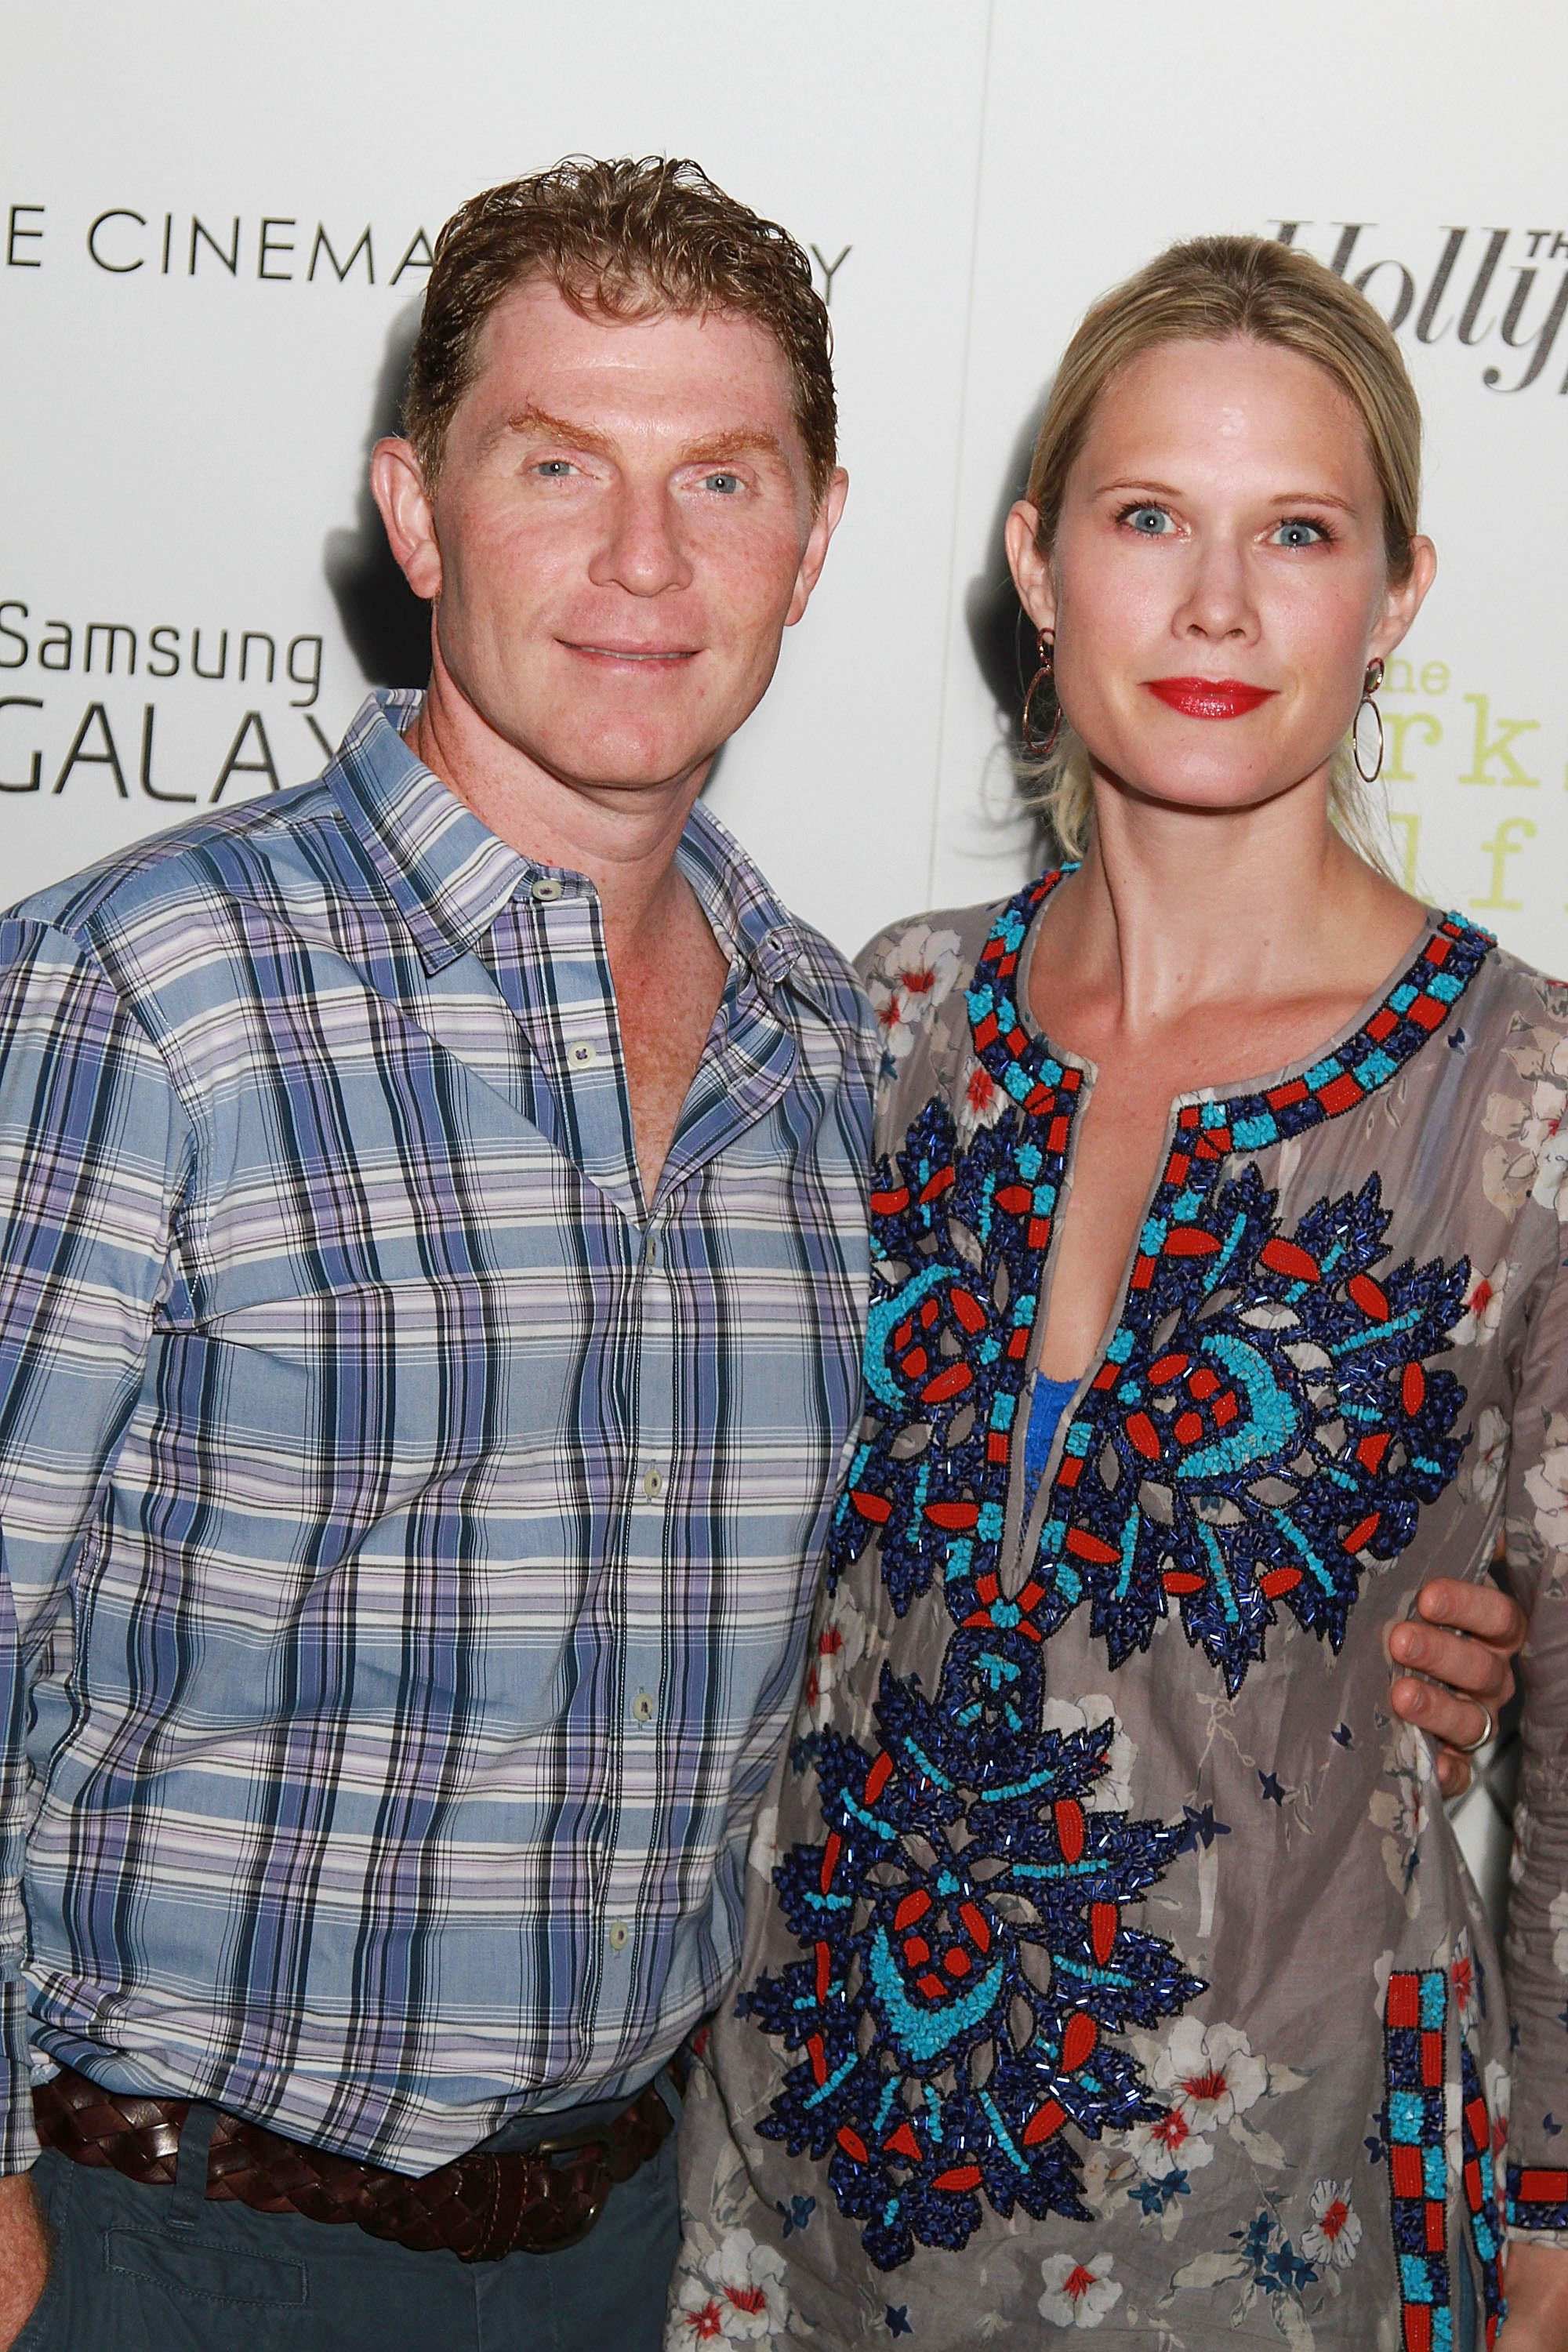 EAST HAMPTON, NY - SEPTEMBER 02:  Bobby Flay and Stephanie March attend The Cinema Society, The Hollywood Reporter And Samsung Galaxy S III Special Screening Of 'The Perks Of Being A Wallflower' on September 2, 2012 in East Hampton, New York.  (Photo by Sonia Moskowitz/Getty Images)